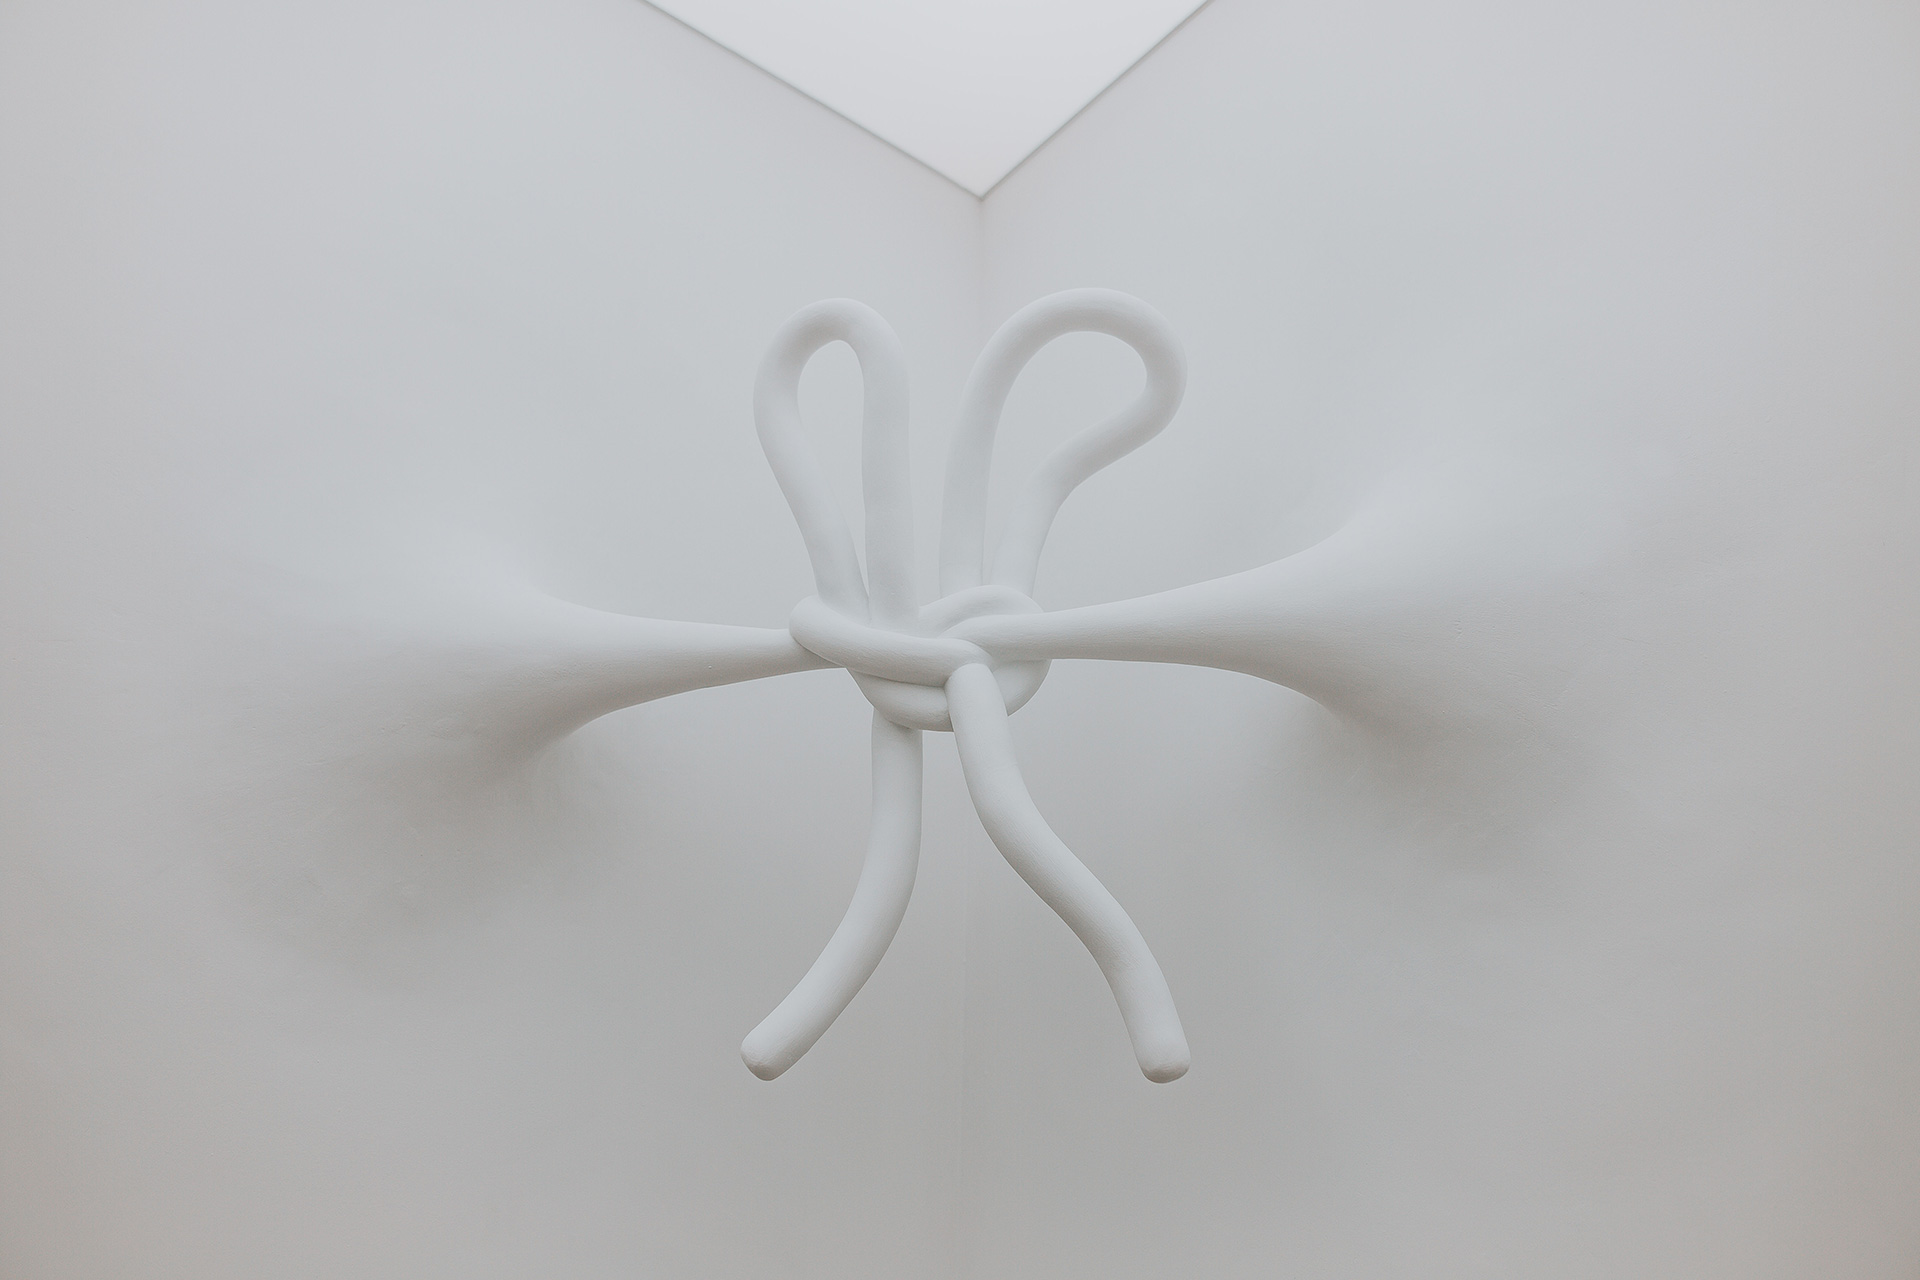 Daniel Arsham, Corner Knot, Connecting Time, MOCO Museum | Connecting Time | Daniel Arsham | STIR